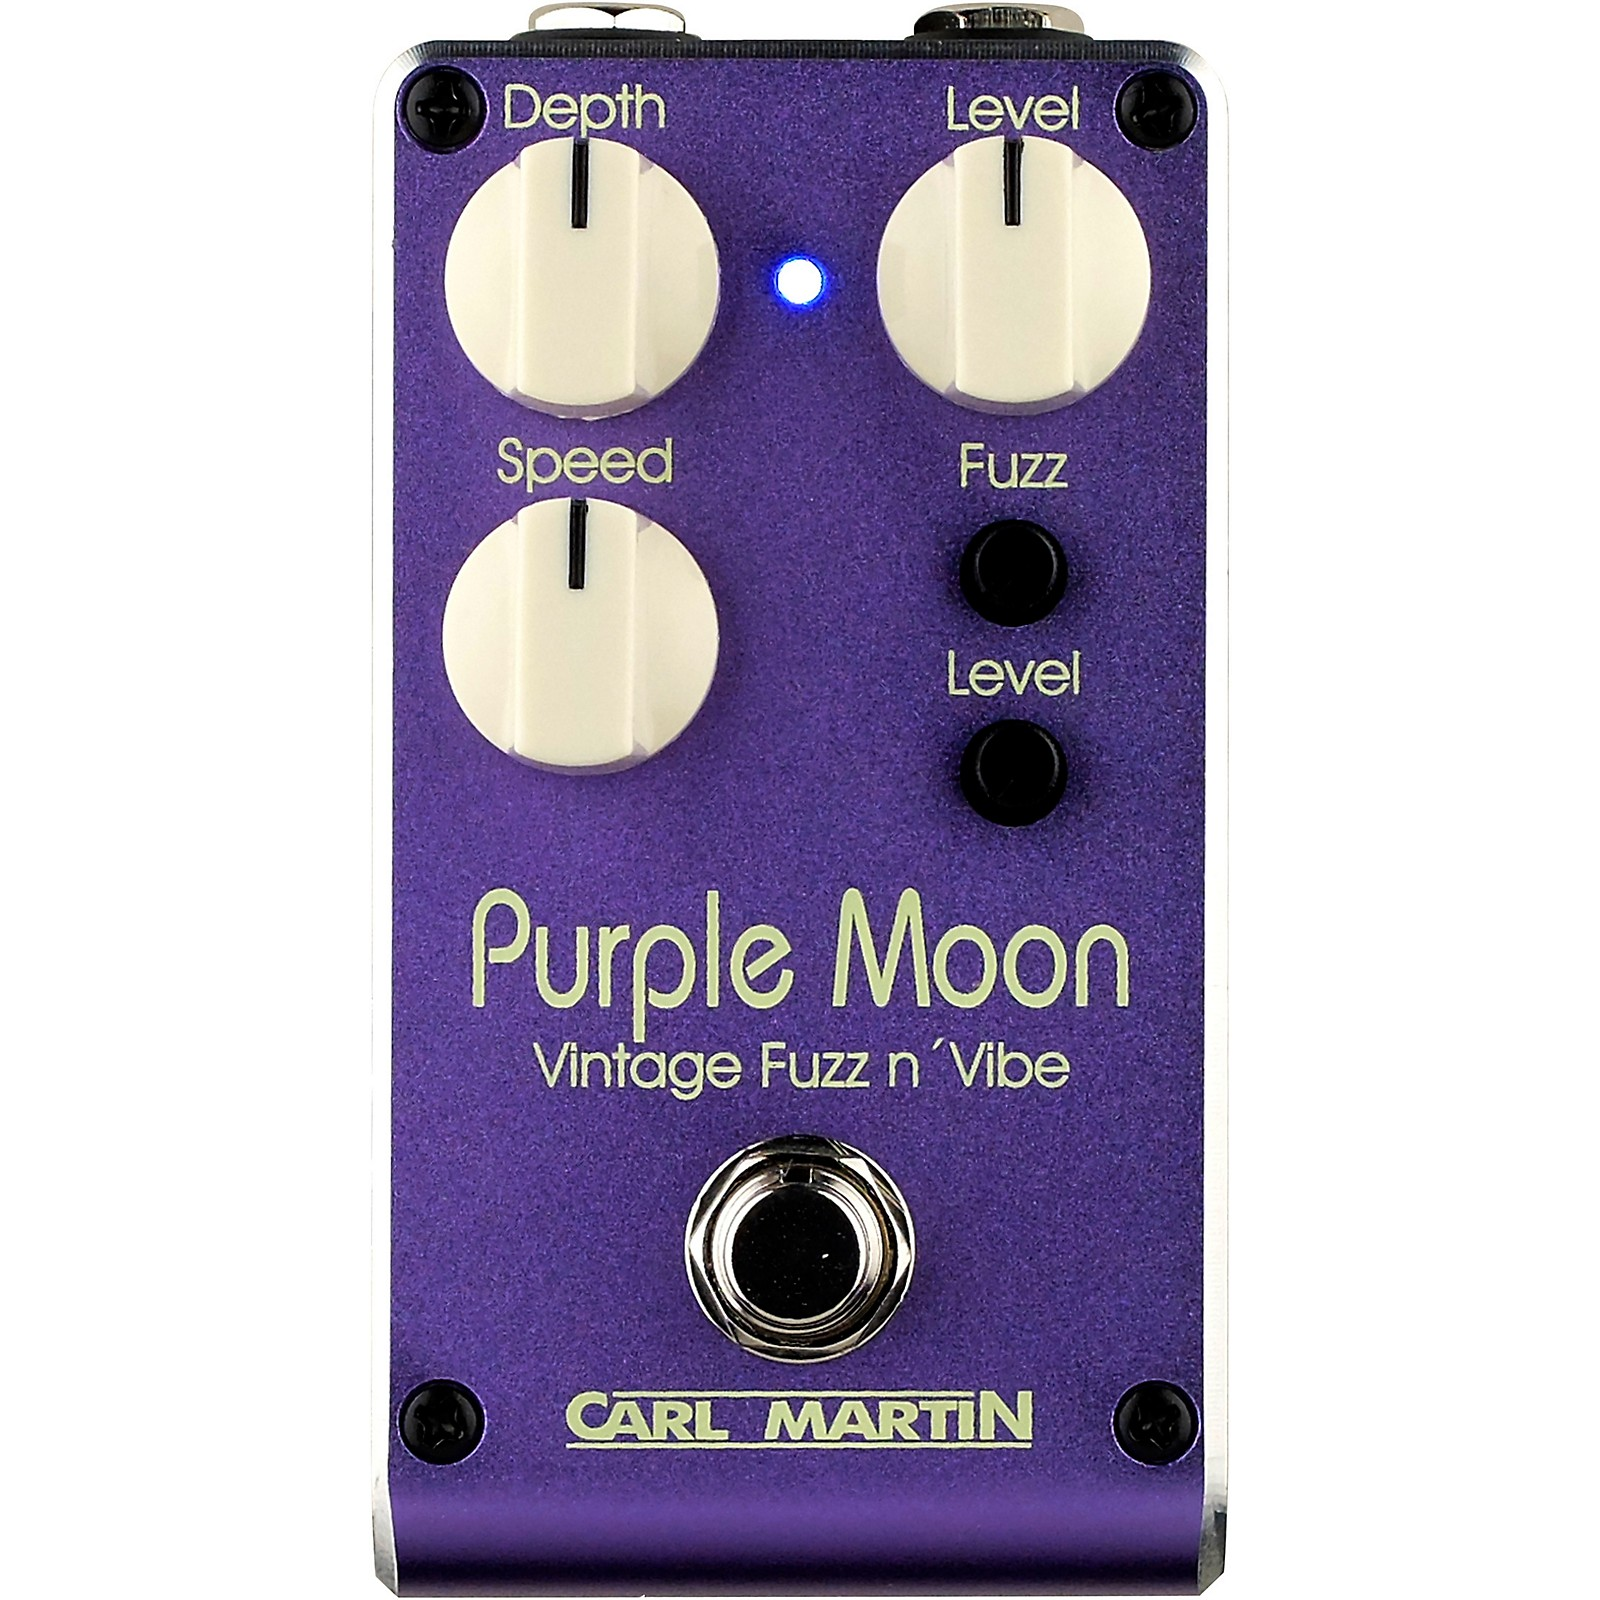 Carl Martin Purple Moon V2 Vintage Fuzz and Vibe Effects Pedal